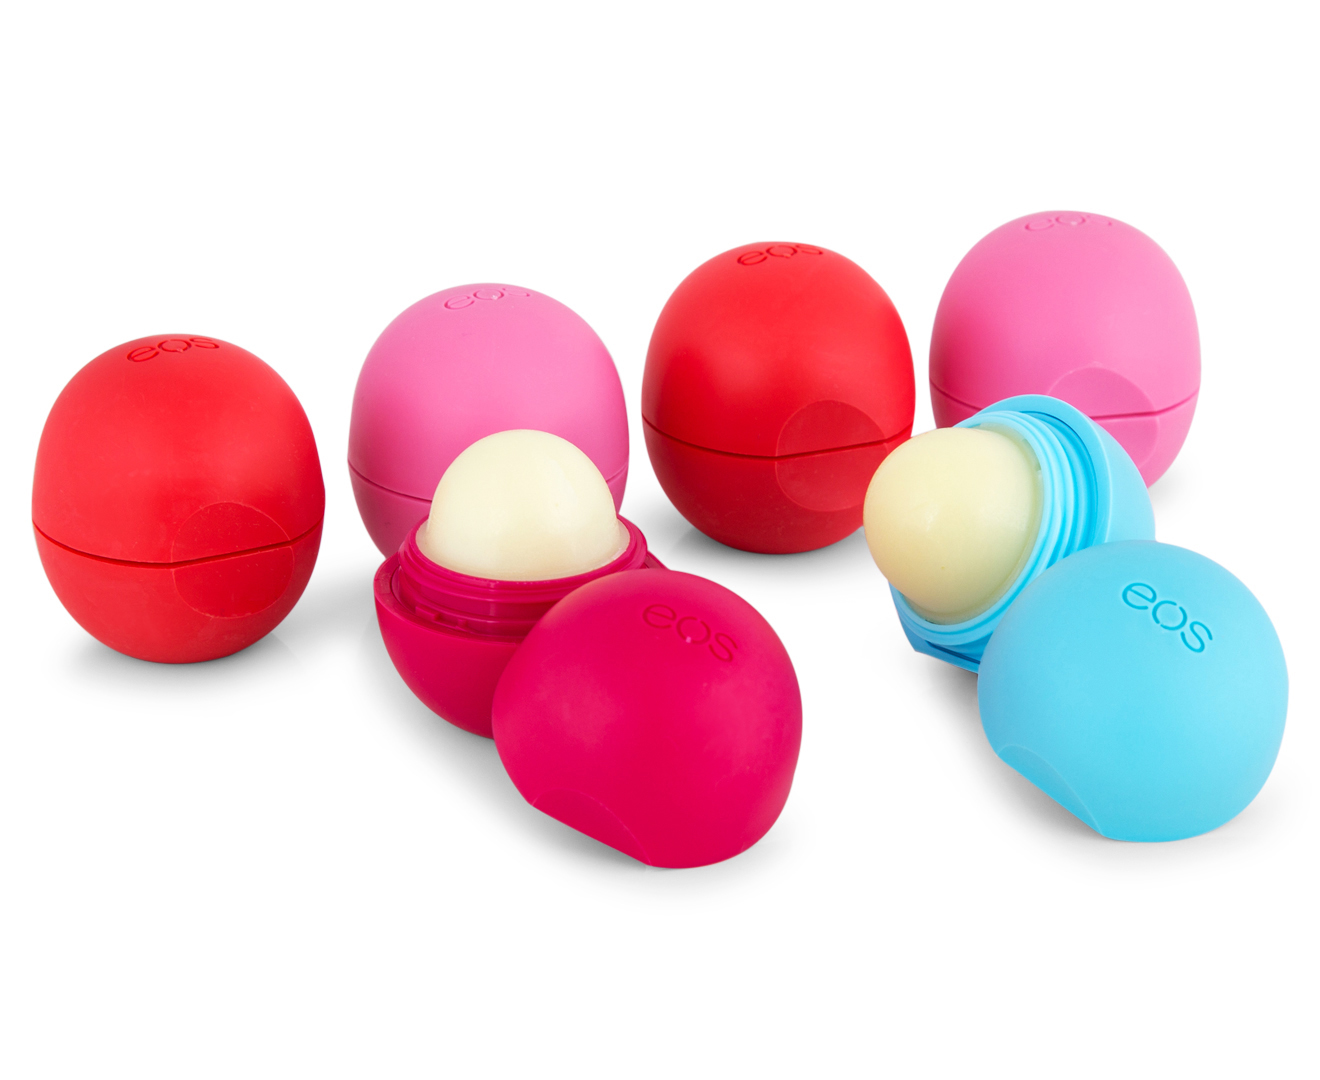 Eos lip balm men